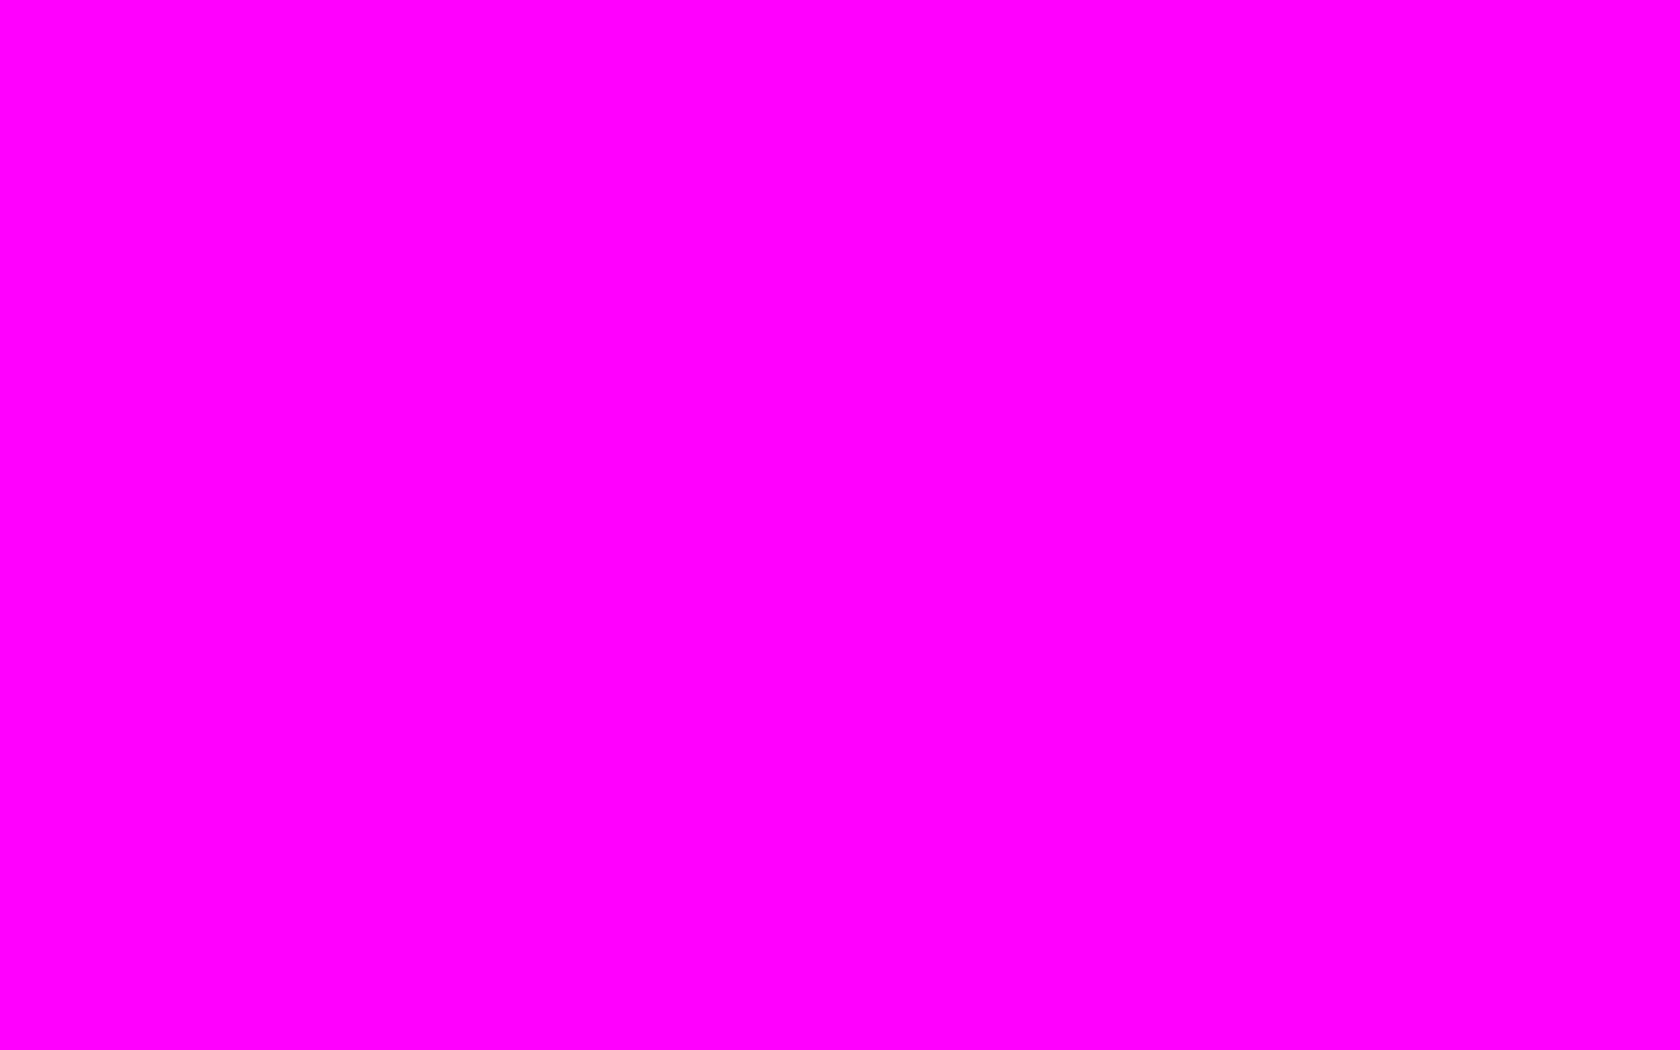 1680x1050 Fuchsia Solid Color Background